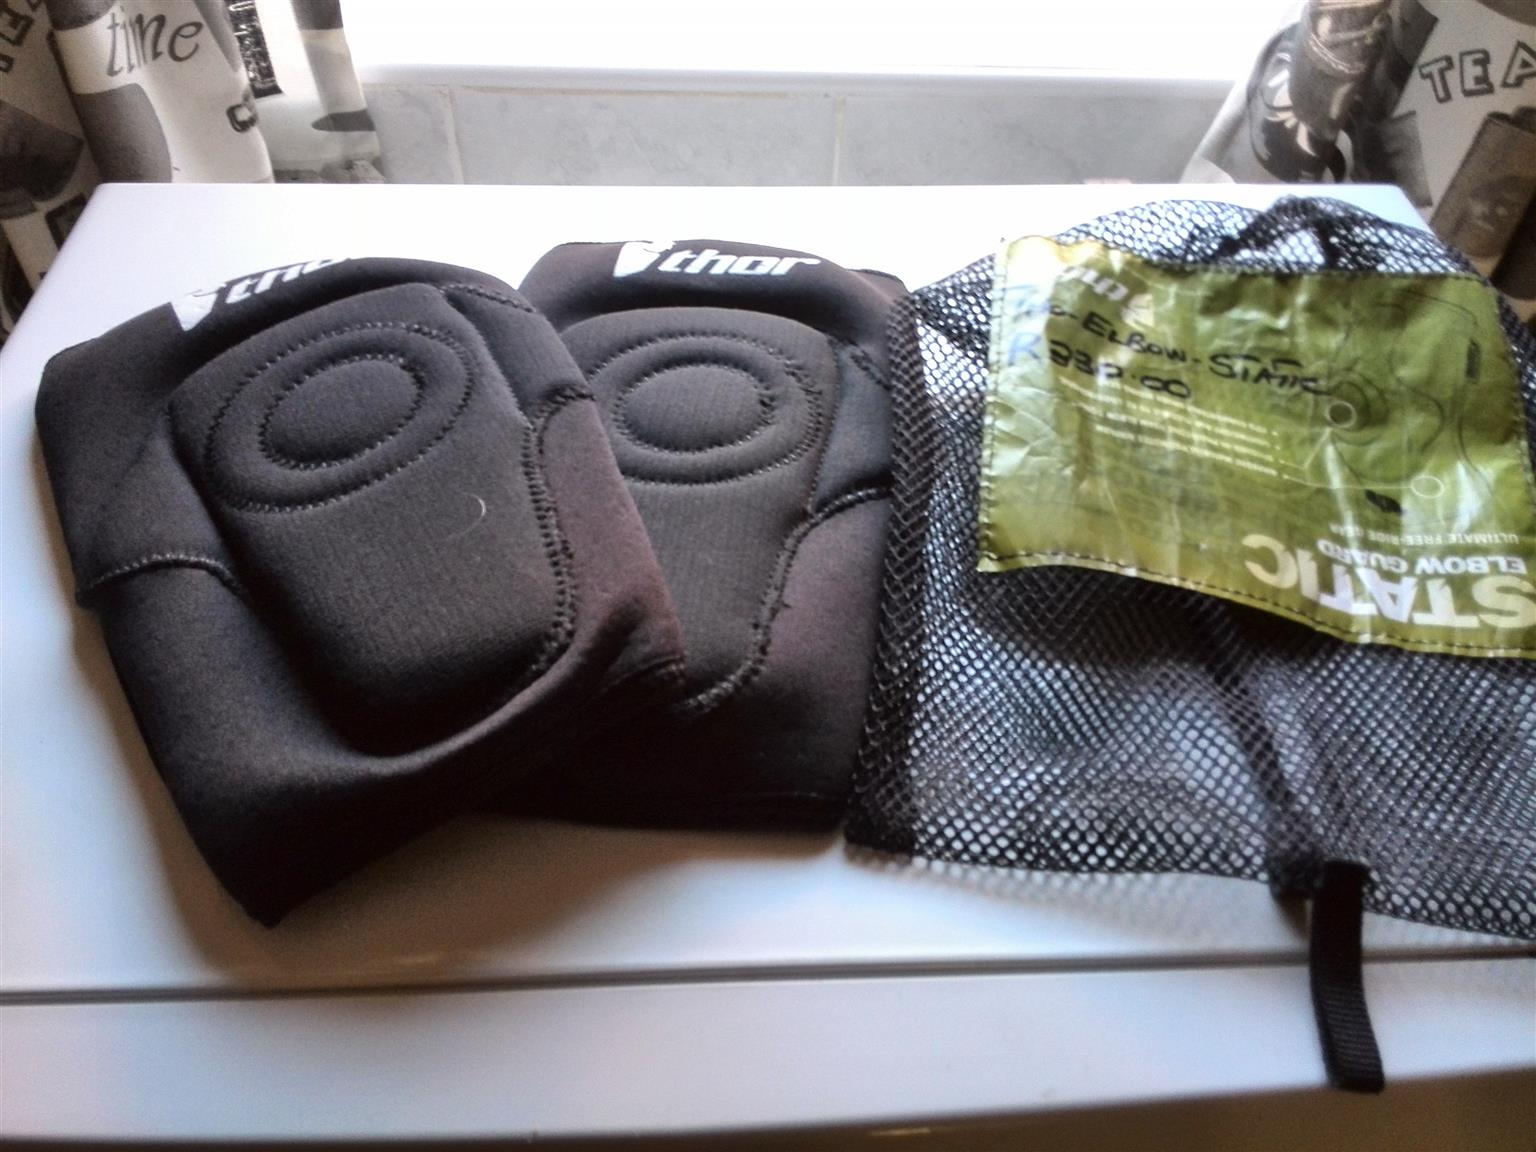 Thor elbow guards for motorcyclists / skateboarders / cyclist